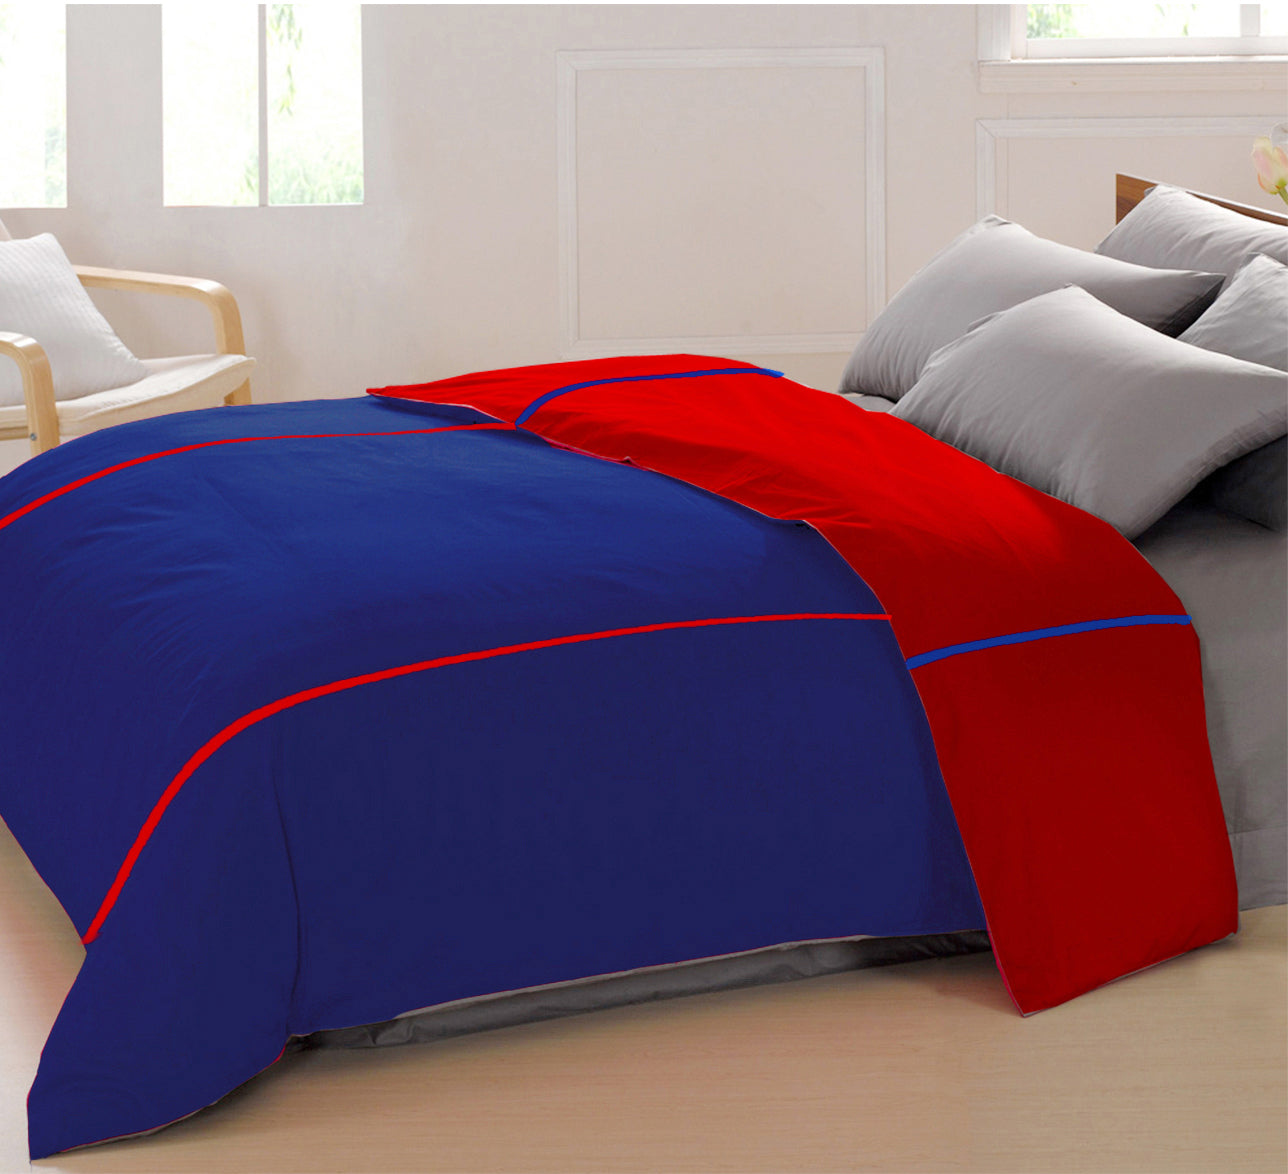 AURAVE Reversible Style Plain Marine Blue & Red 210 TC Mercerised Cotton Duvet Cover/Quilt Cover